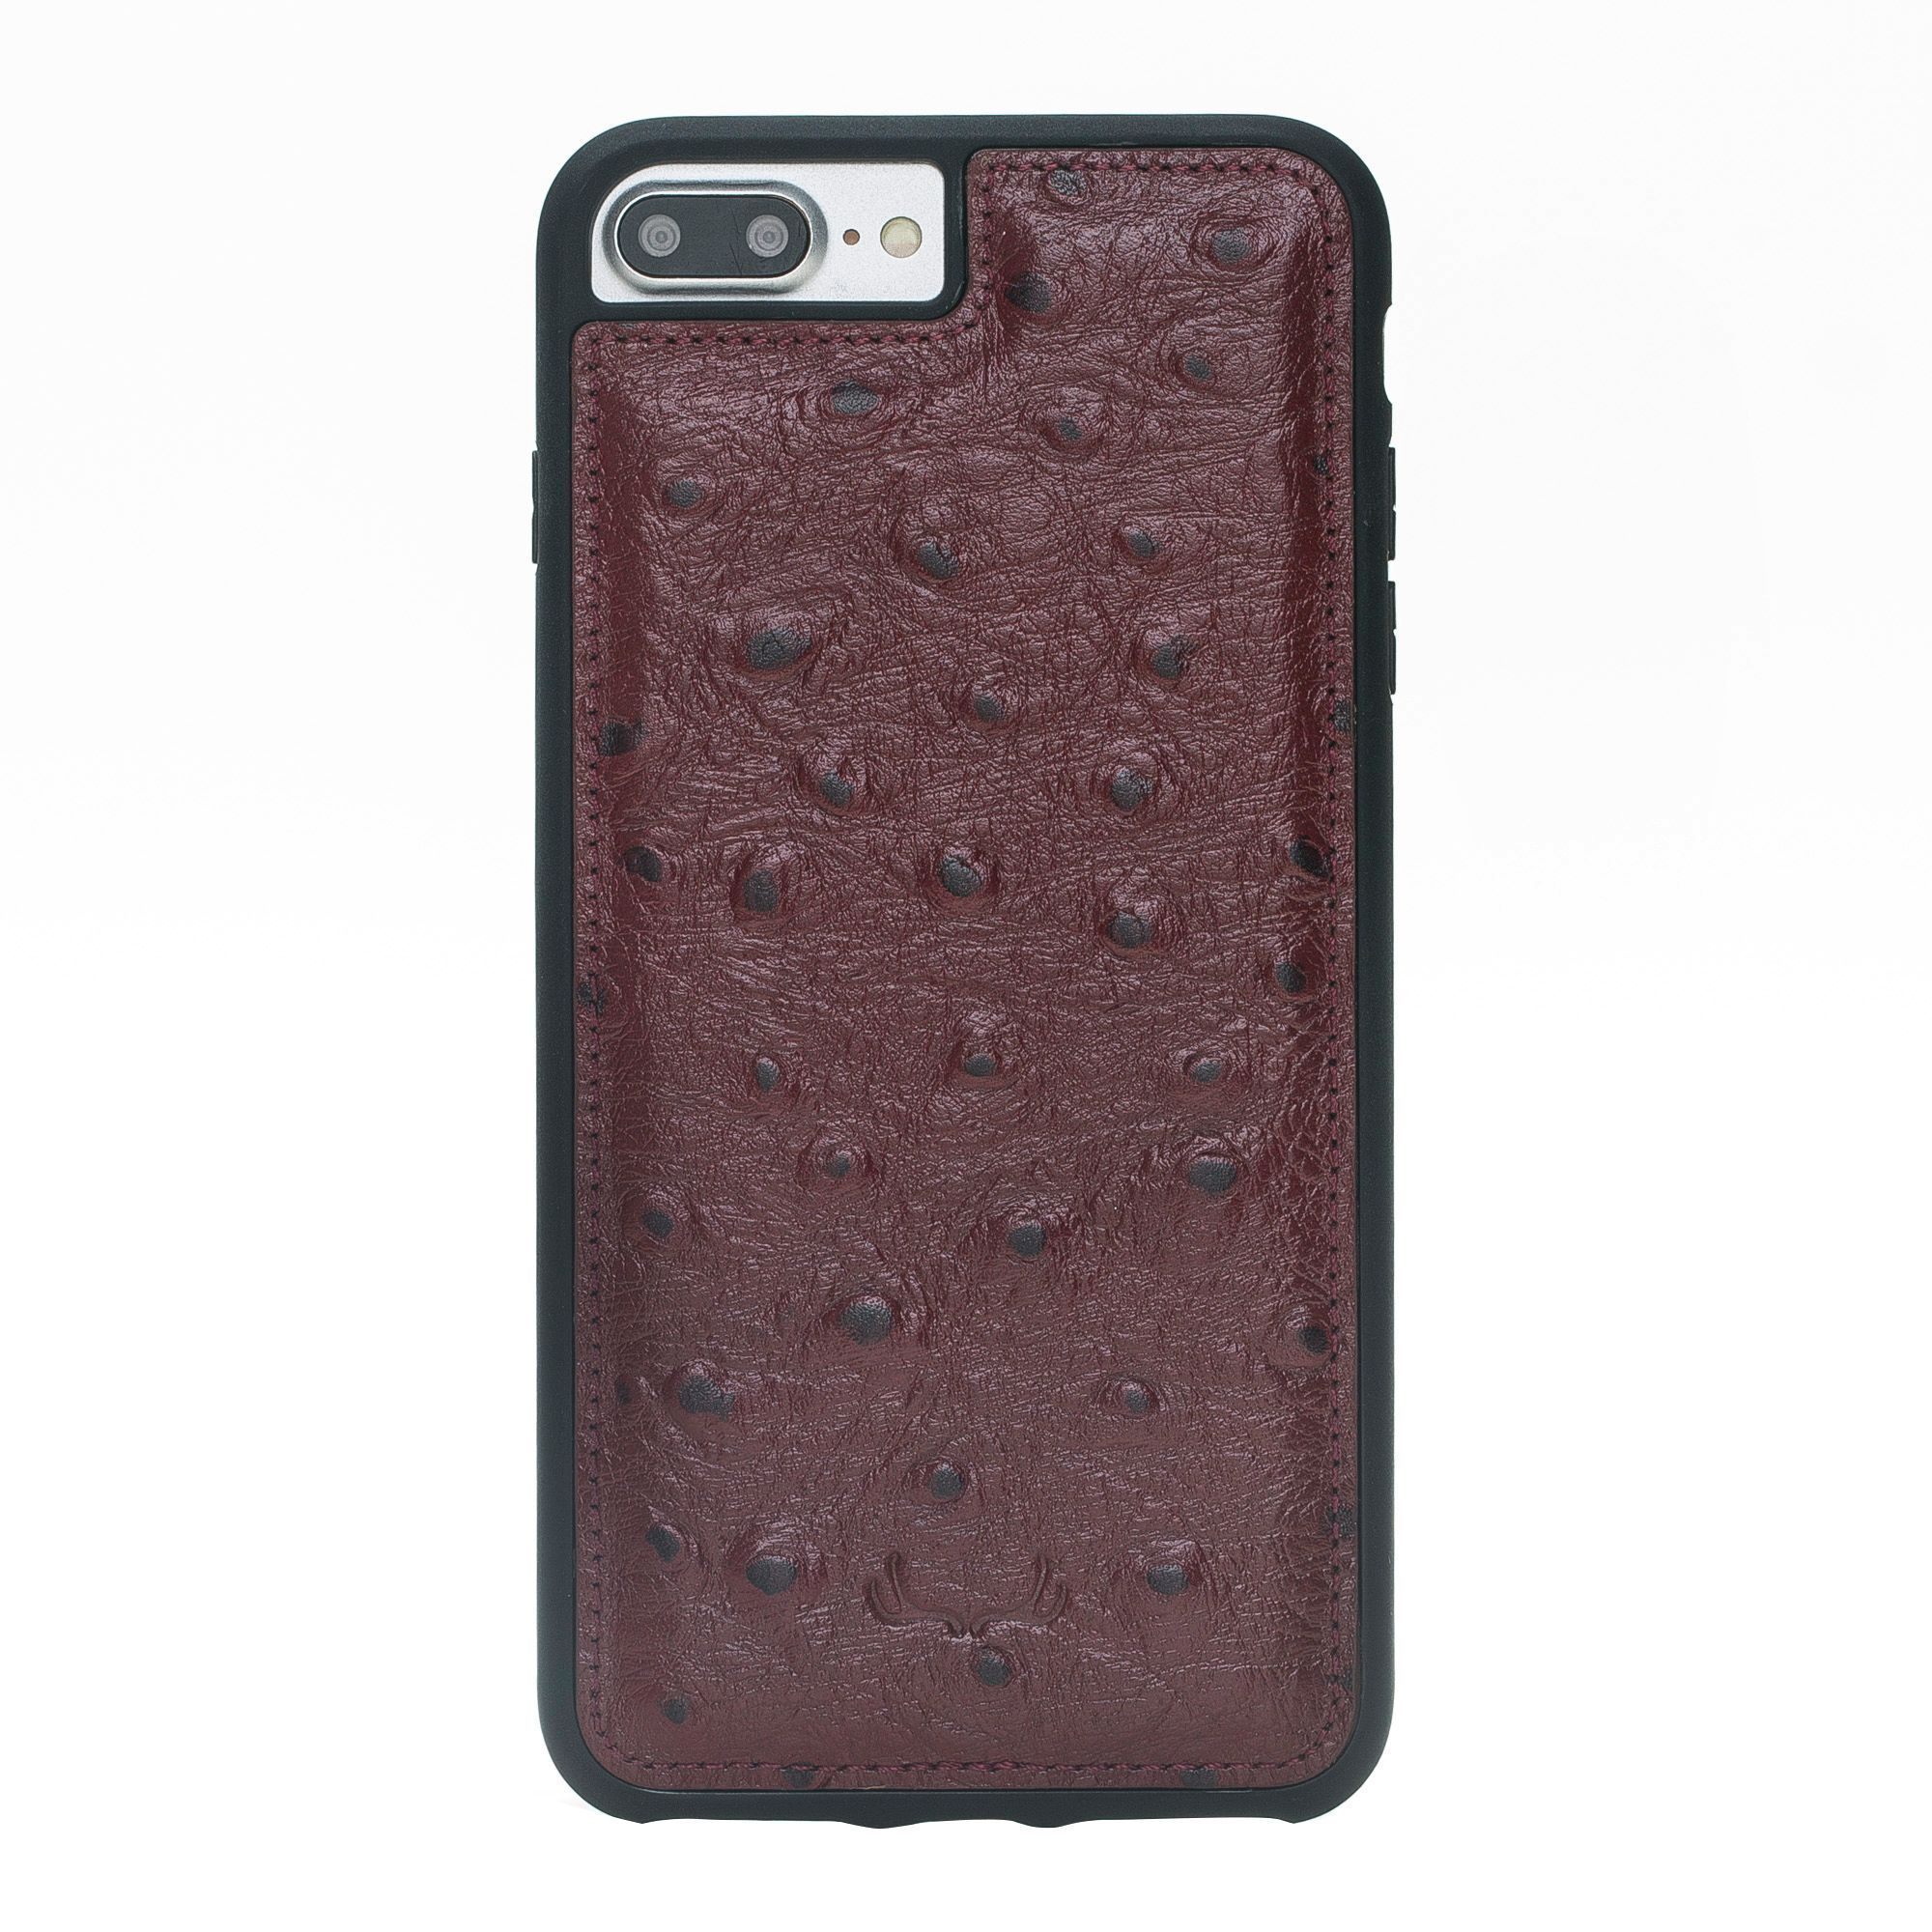 BNT Flex Cover Leather Cases - Ostrich - iPhone 7 Plus/ 8 Plus - Red